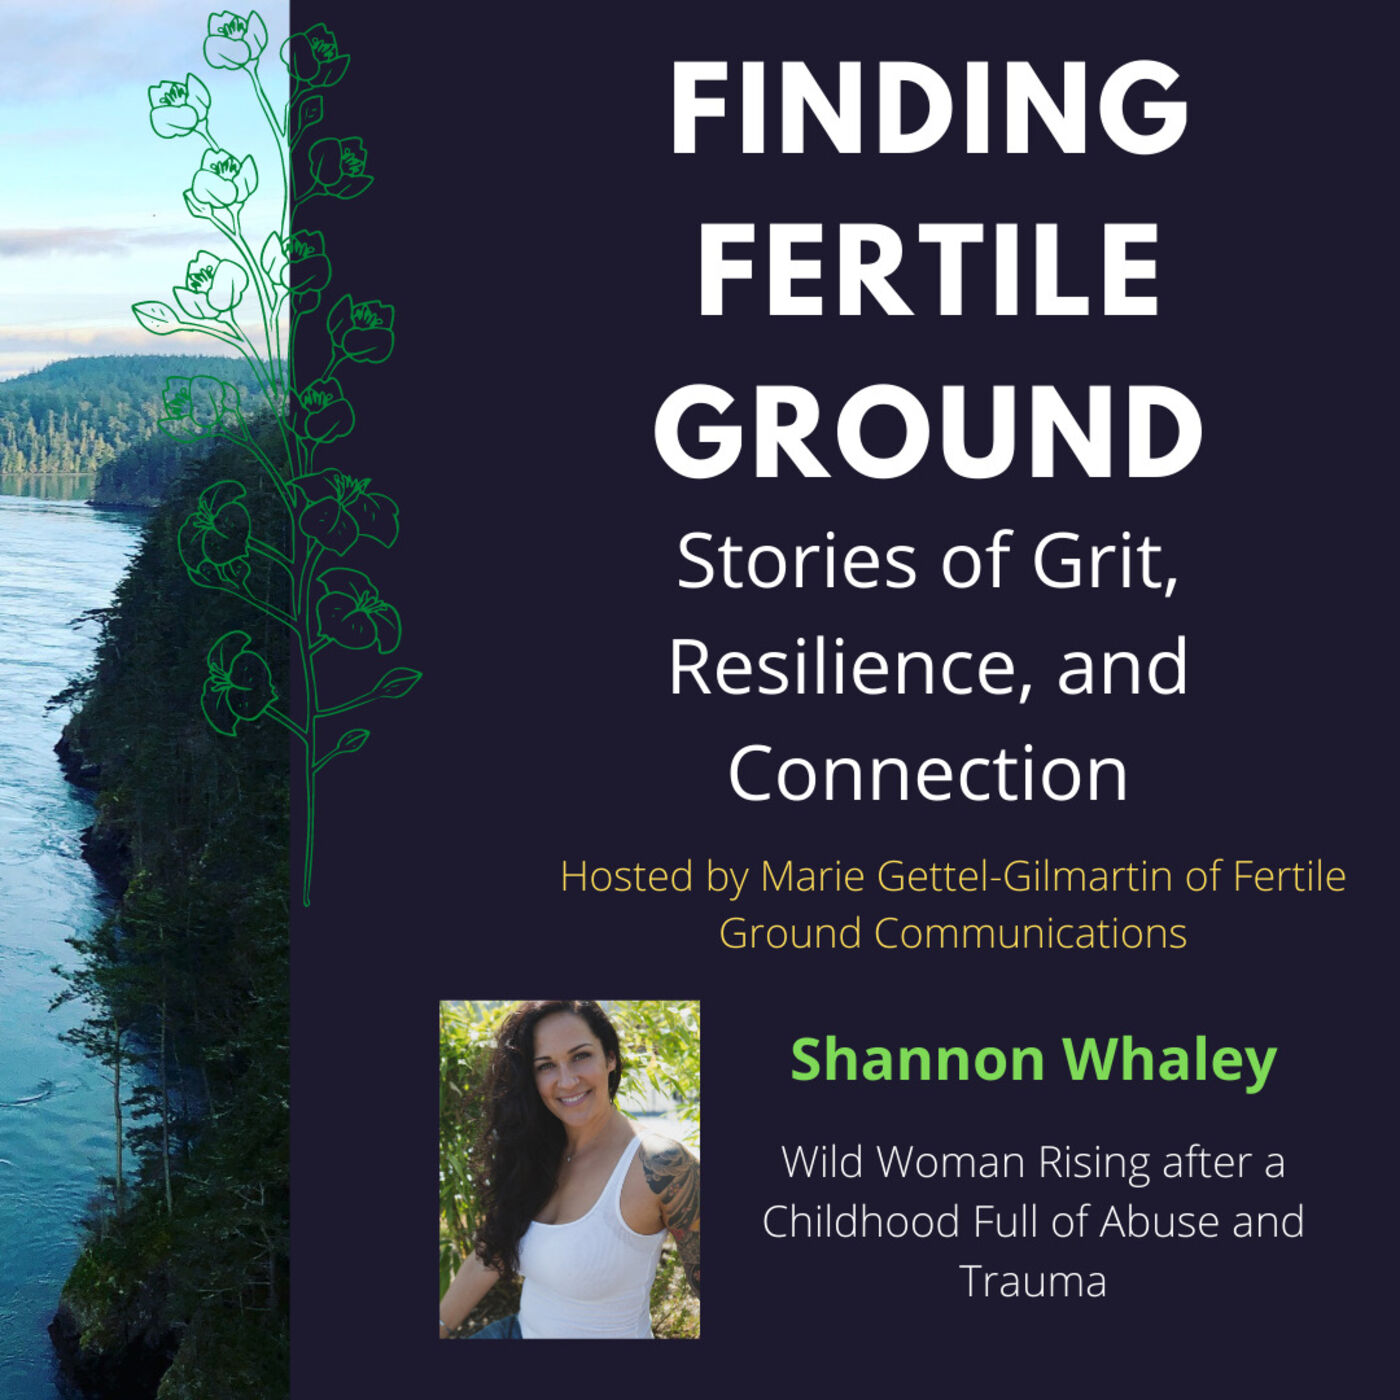 Shannon Whaley: Wild Woman Rising after a Childhood Full of Abuse and Trauma